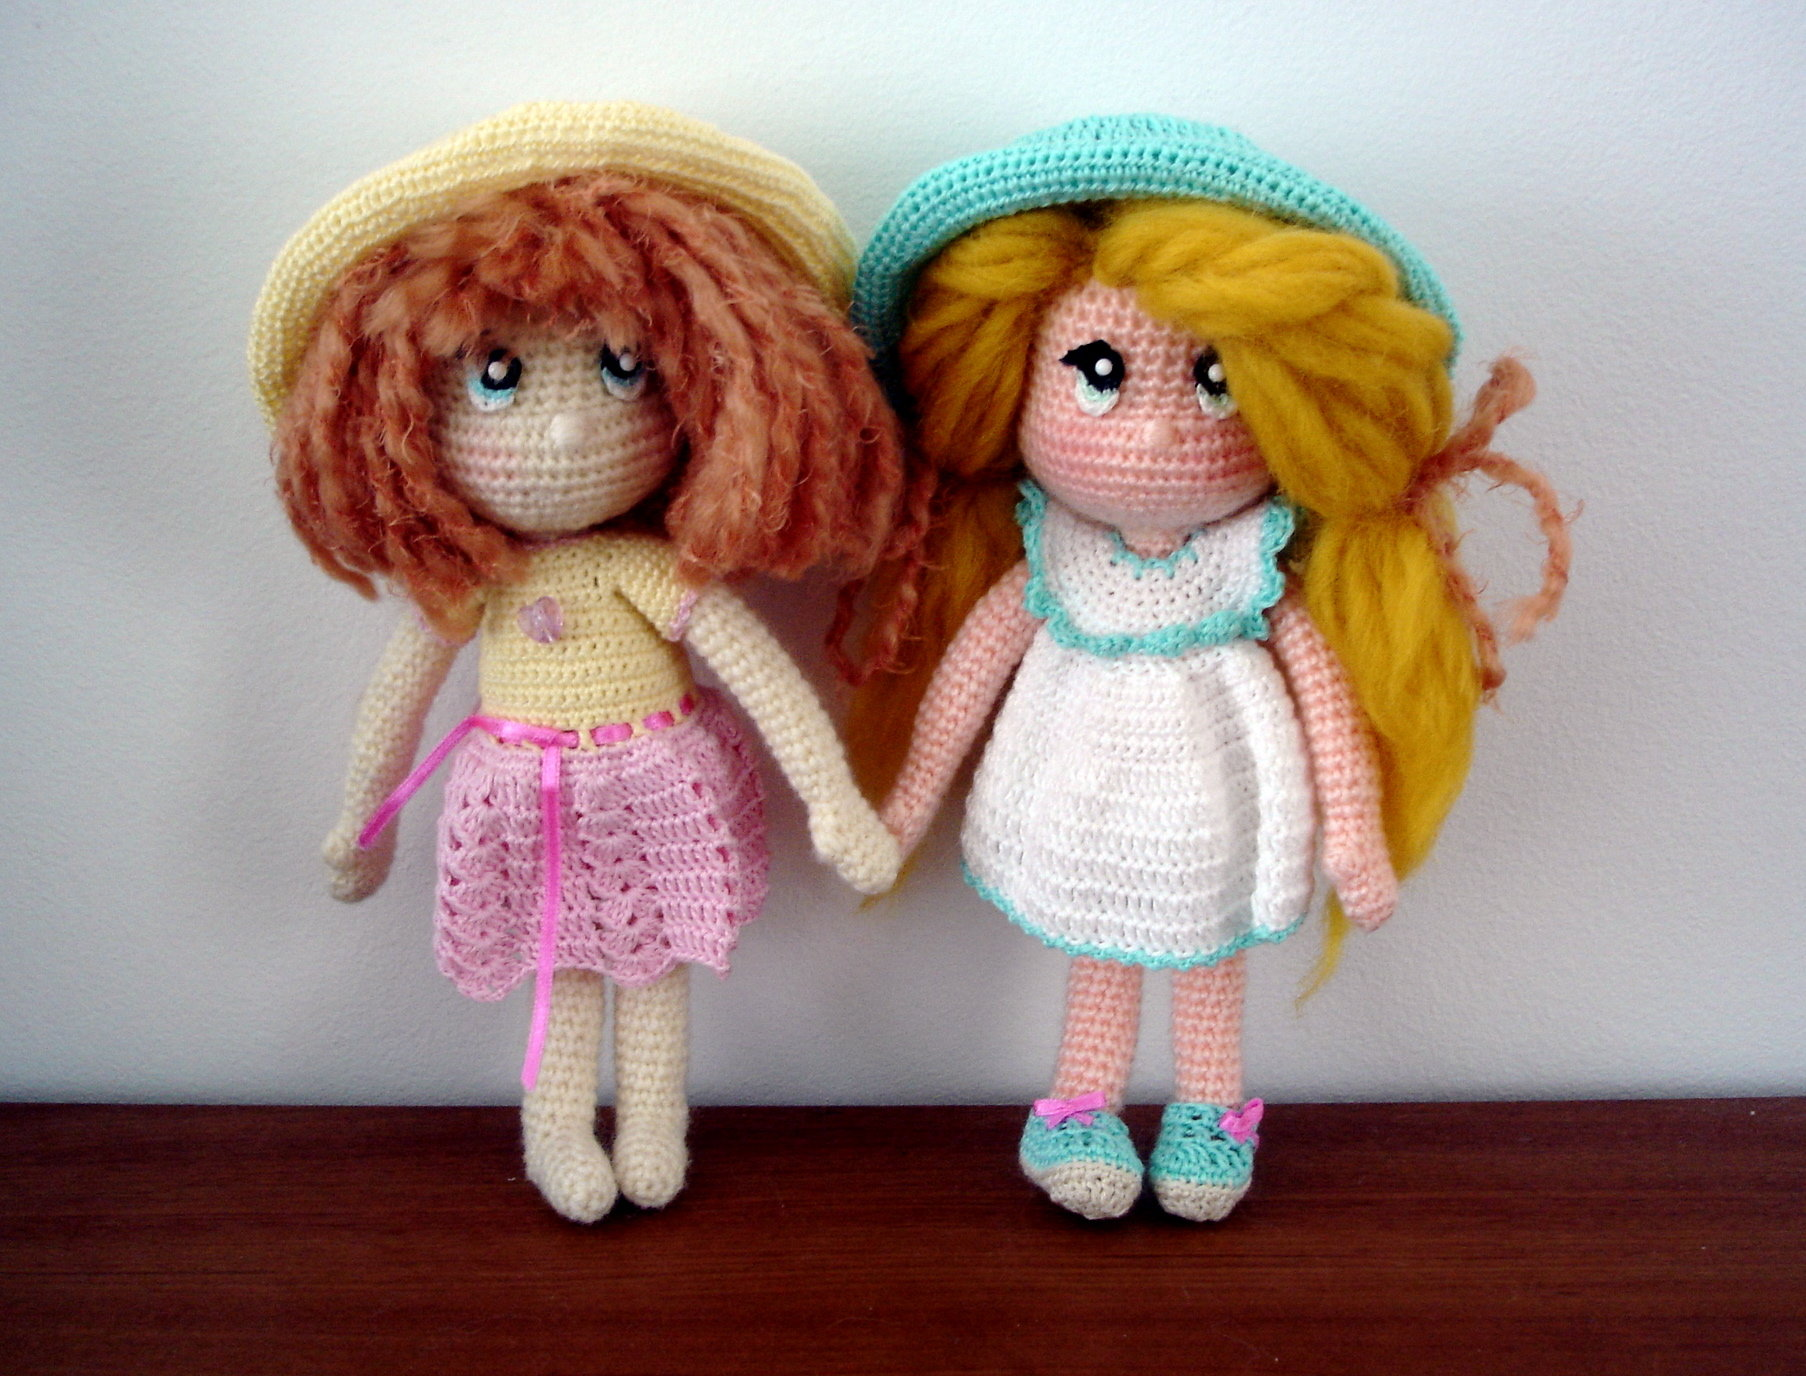 bb candy dolls amigurumibb u0027s blog